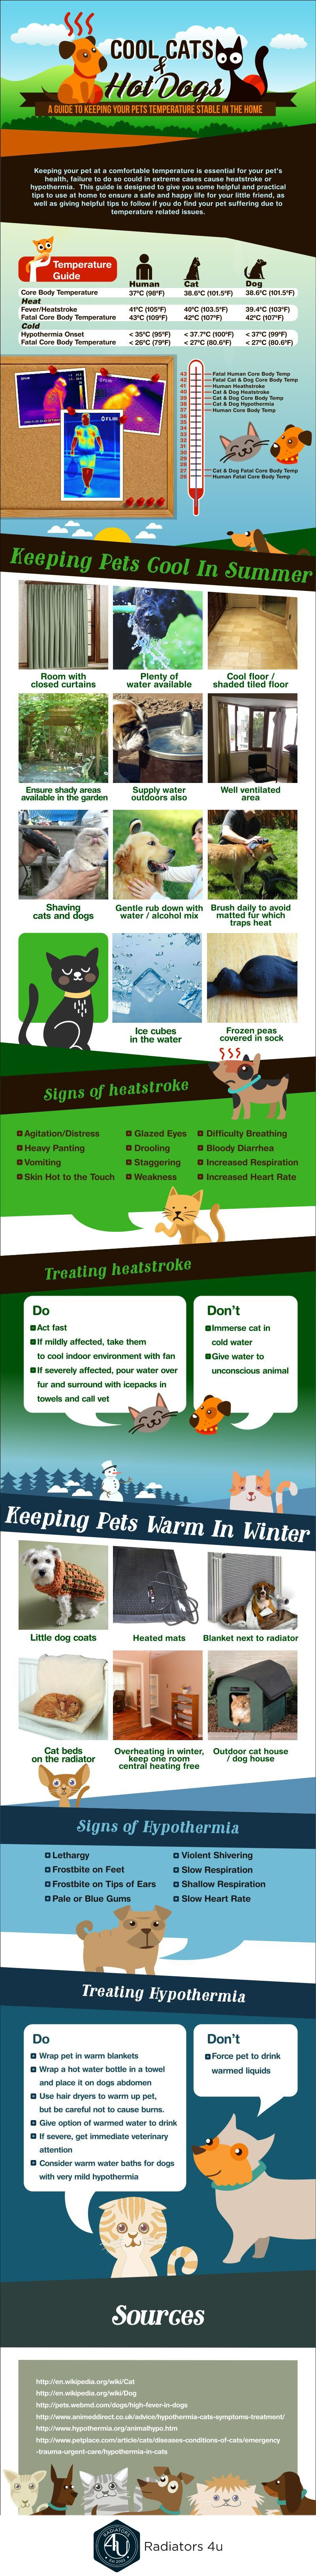 Dogs & Cats Edition: How To Keep Their Body At A Comfortable Temperature - Infographic